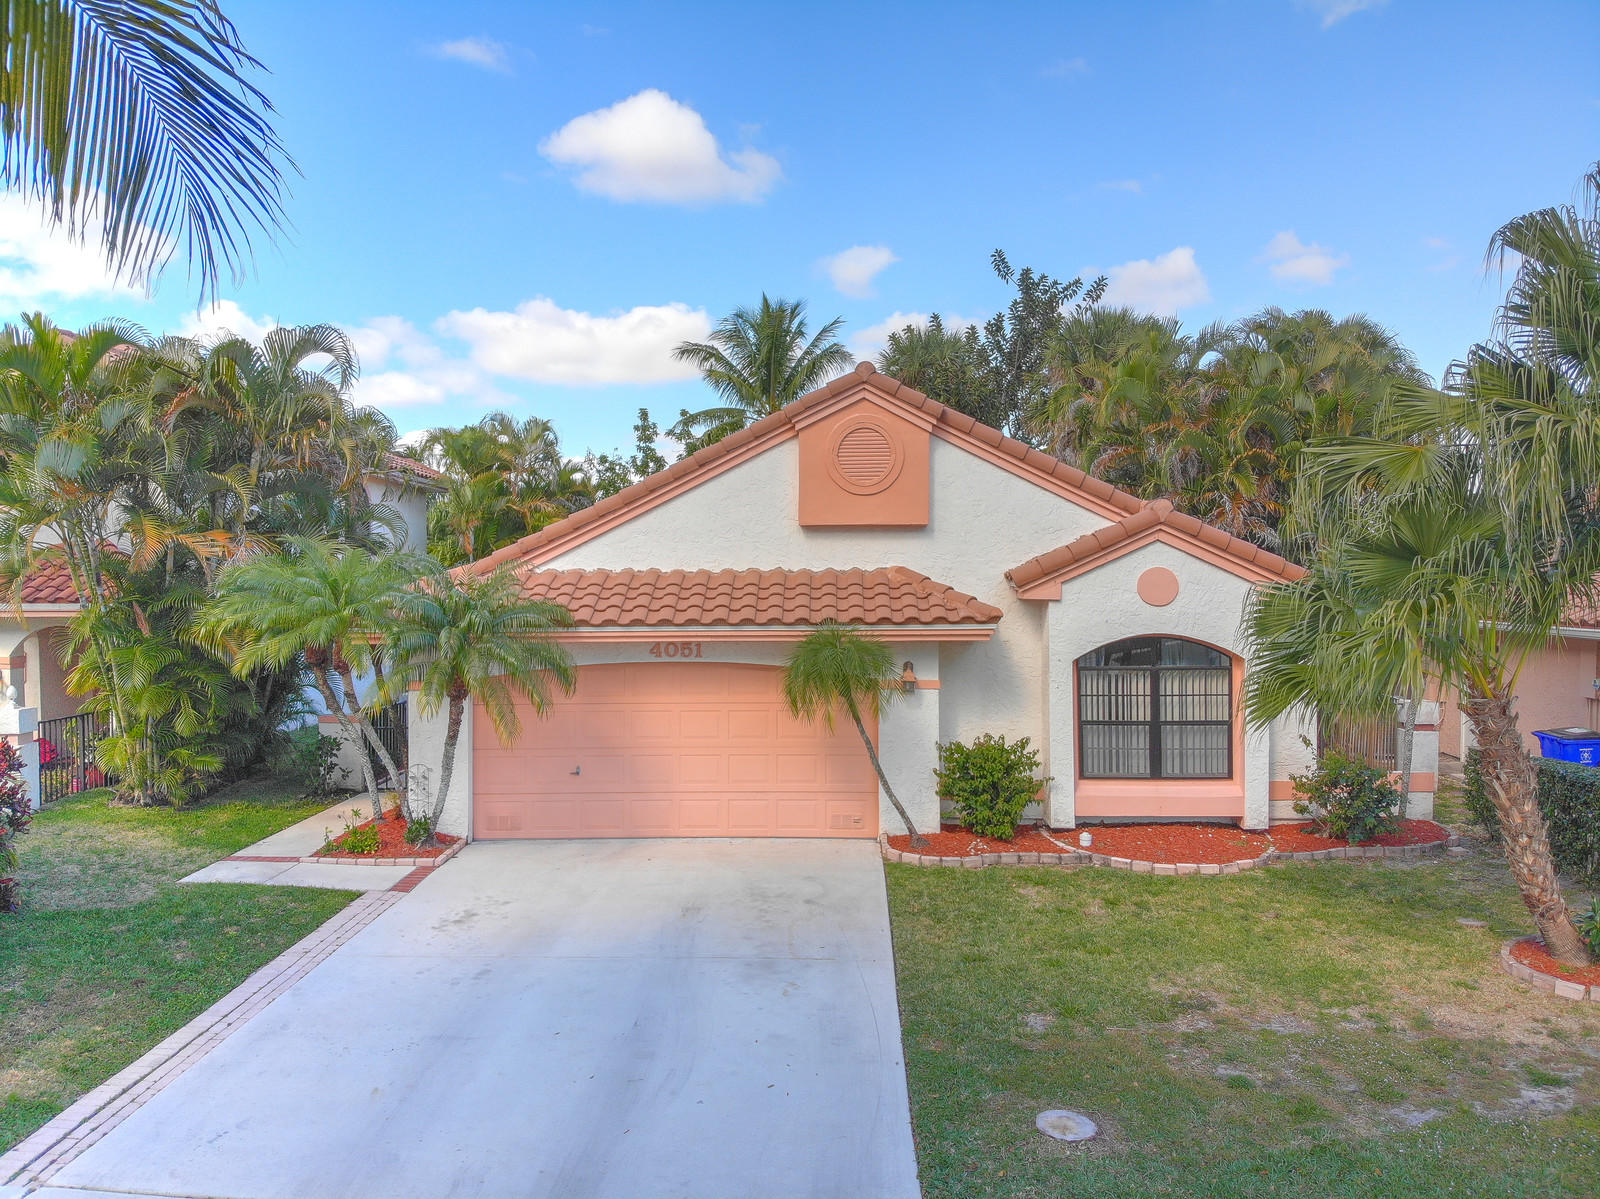 4051 5th Drive, Deerfield Beach, Florida 33442, 3 Bedrooms Bedrooms, ,2 BathroomsBathrooms,Single Family,For Sale,VILLAGES OF HILLSBORO,5th,RX-10498806